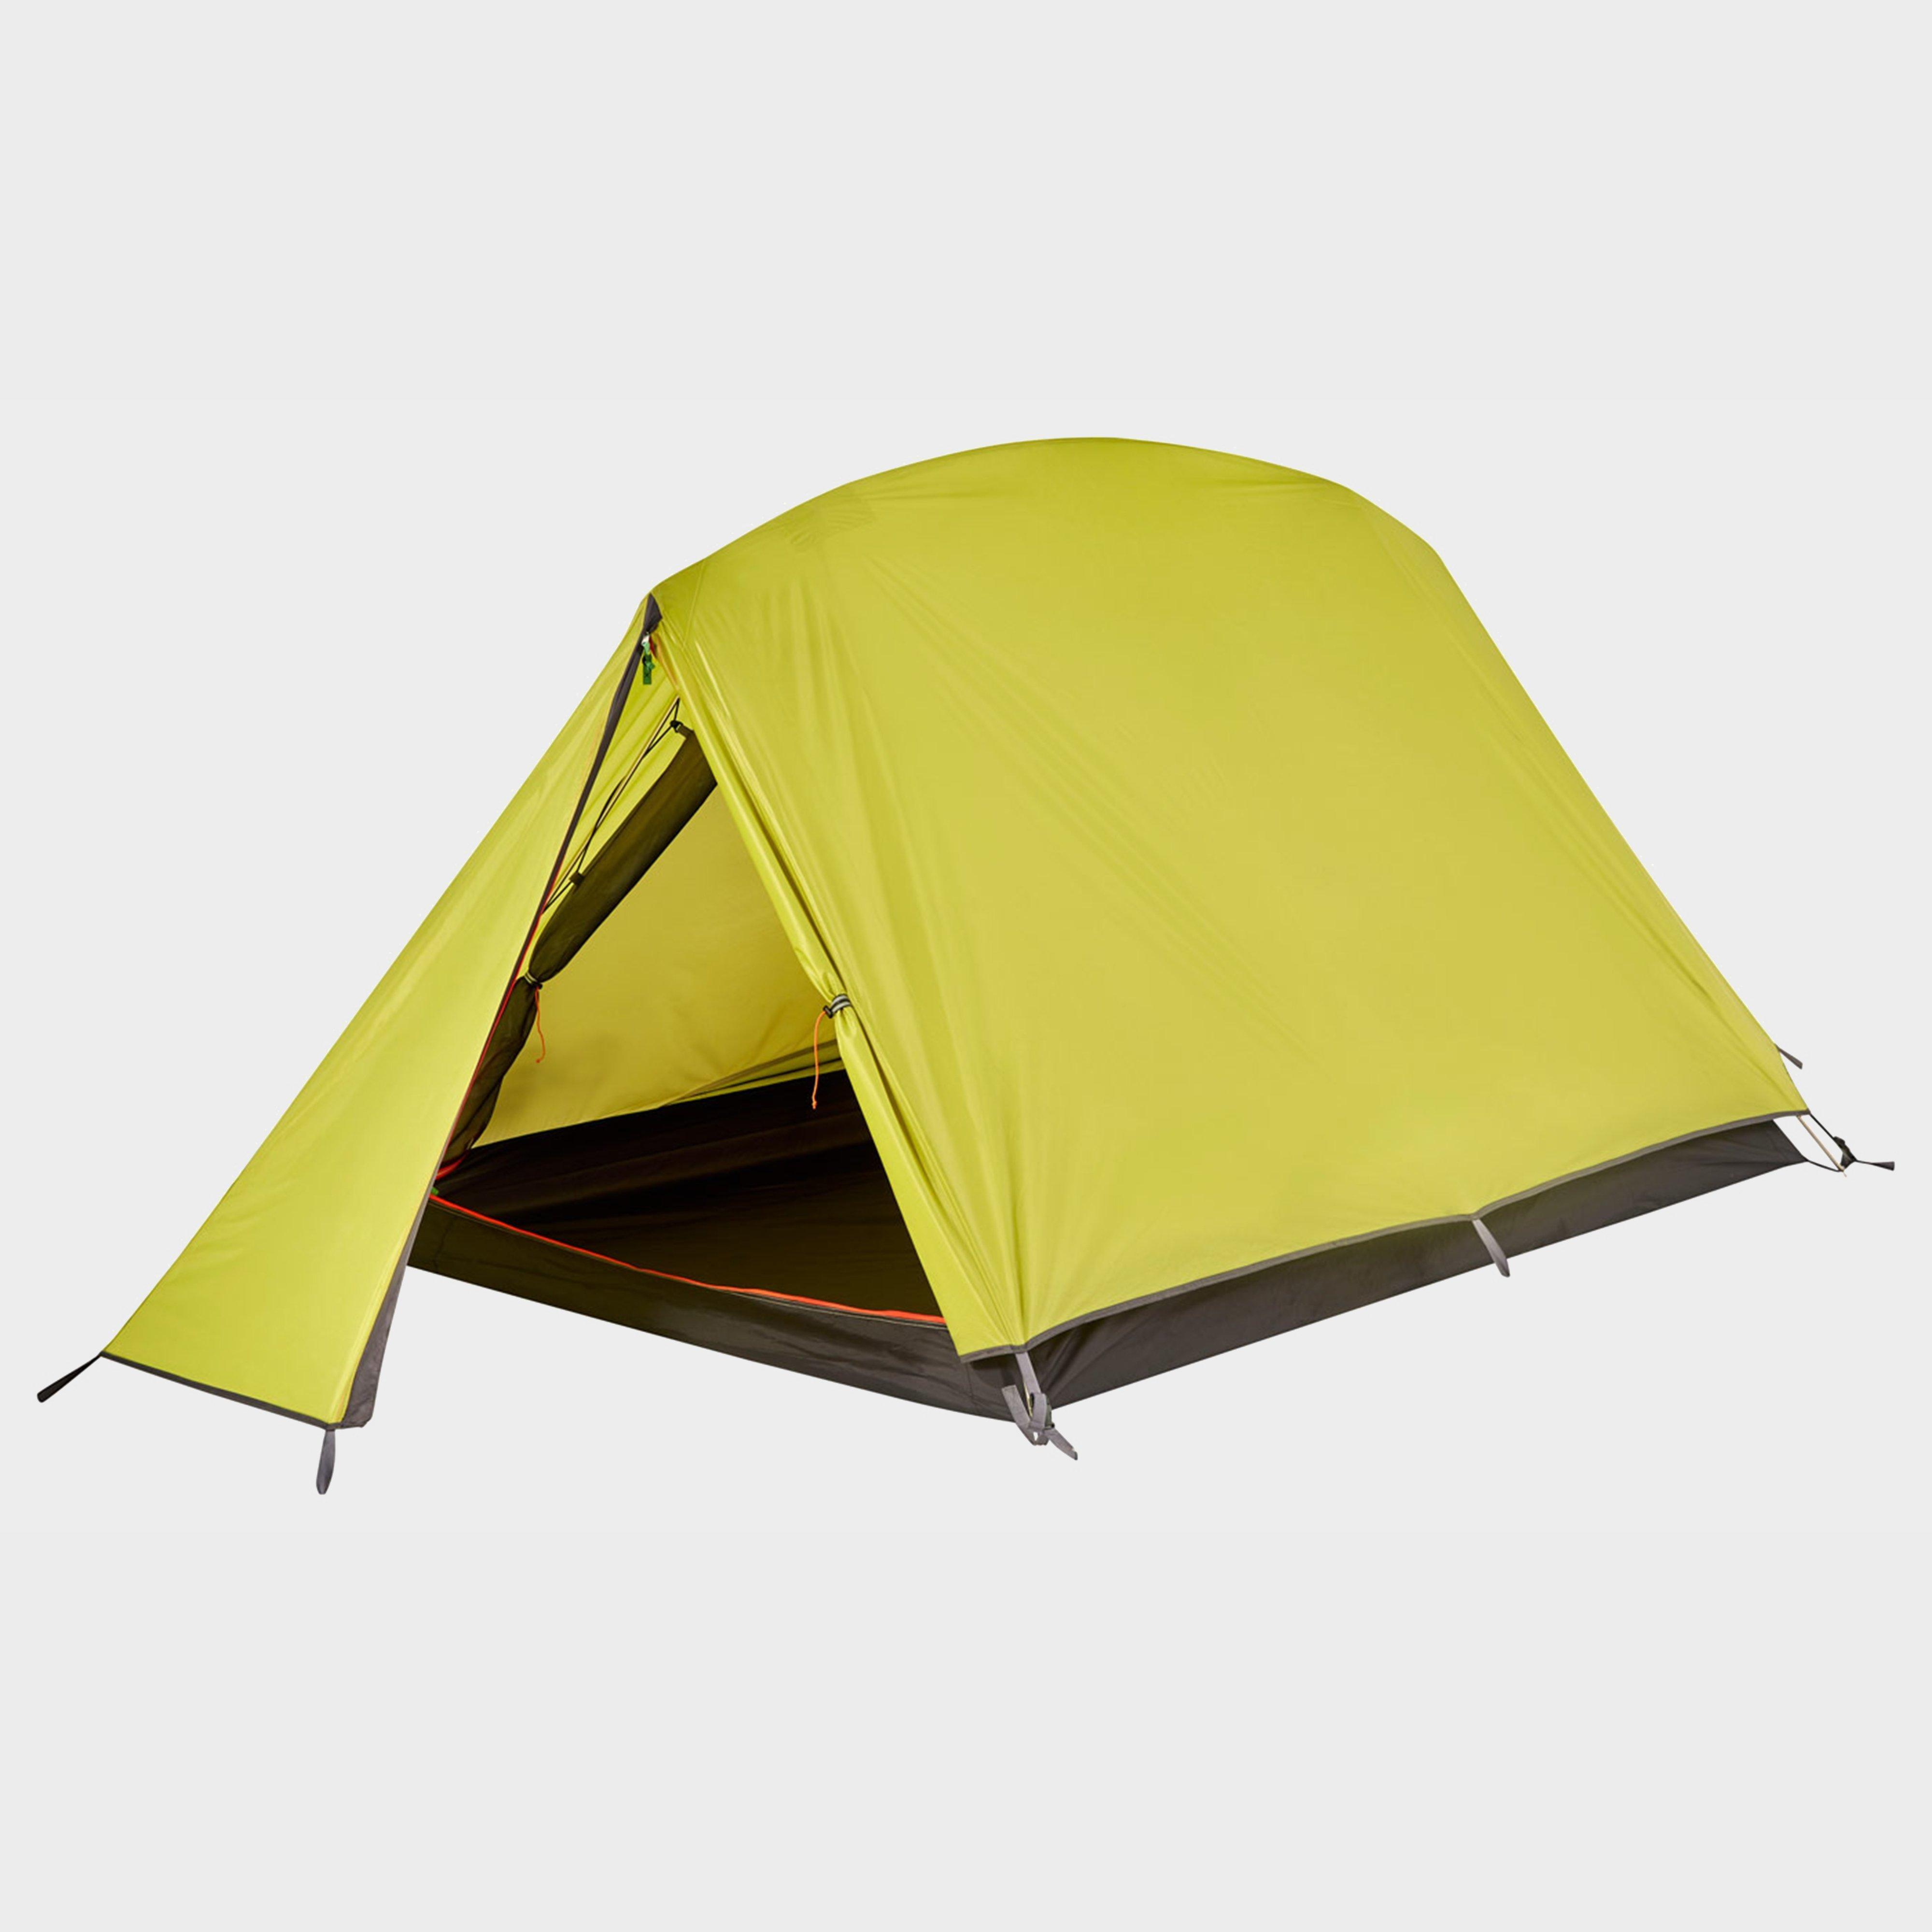 Oex Mongoose EV II 2 Person Tent, Yellow